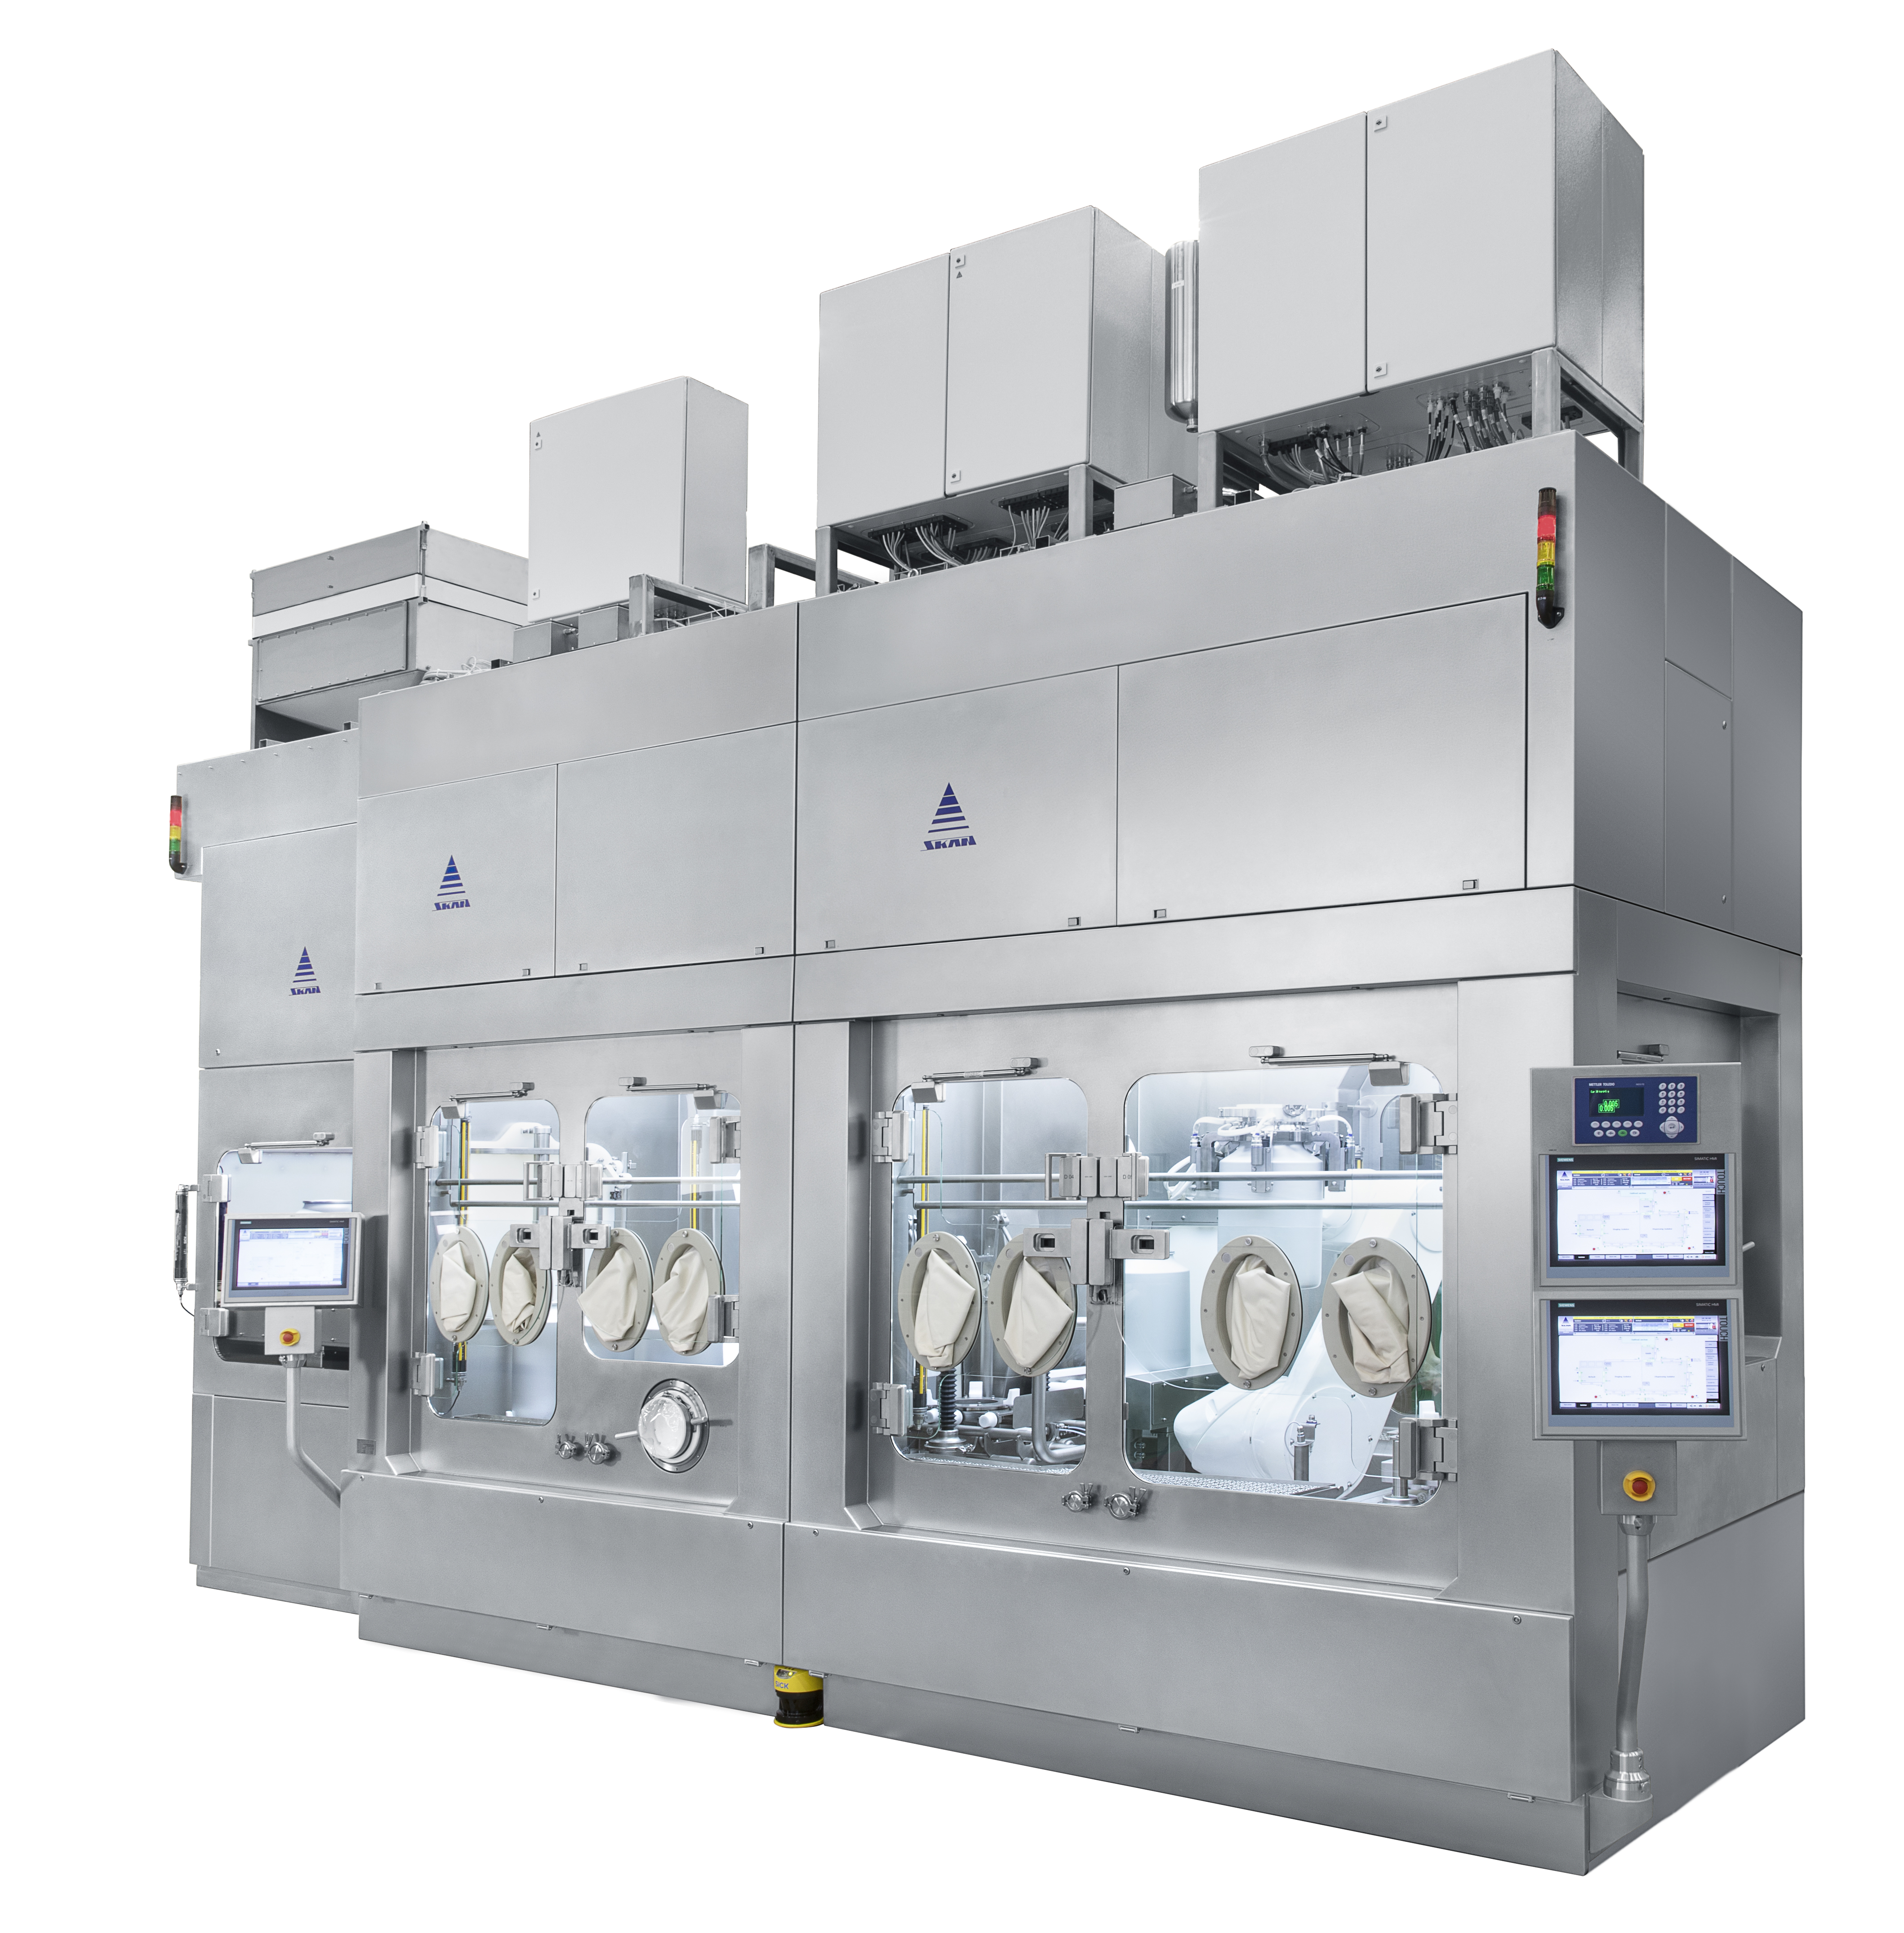 Robotics in a sterile Pharma Isolator / Sterile Discharging of large Aluminum Cans into a Process Vessel – Case Study